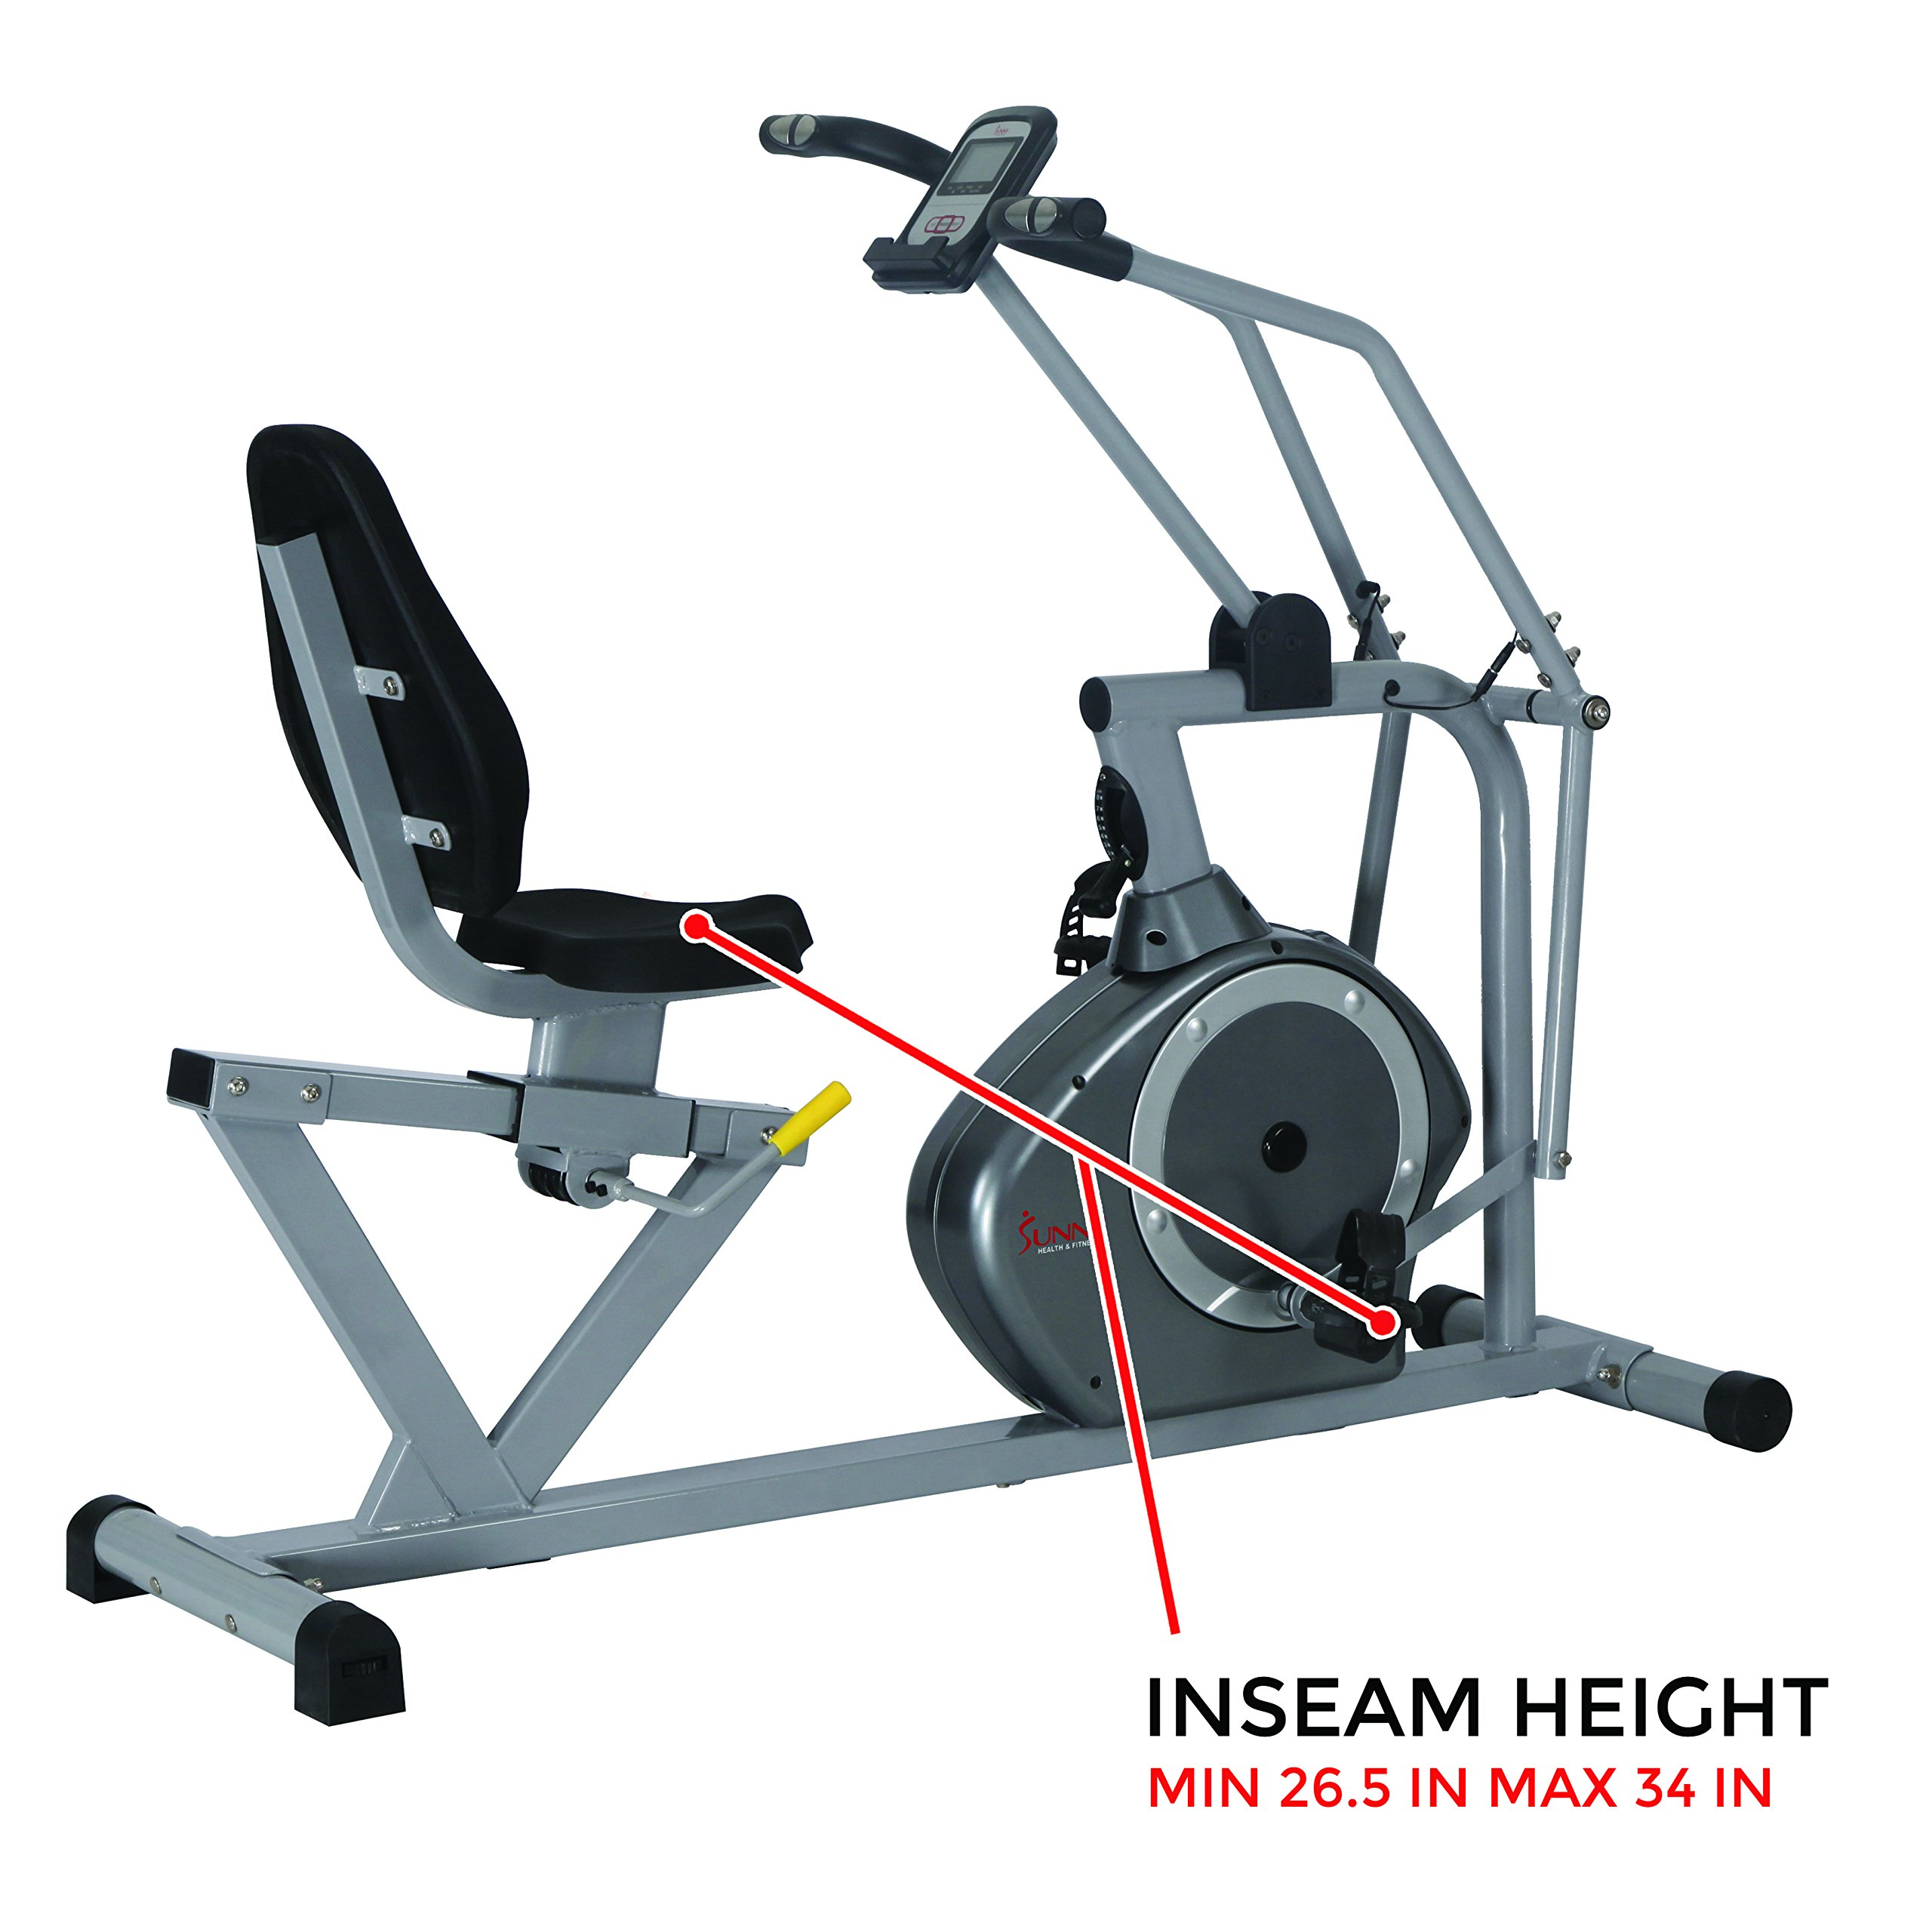 Sunny Health & Fitness Magnetic Recumbent Bike Exercise Bike, 350lb High Weight Capacity, Cross Training, Arm Exercisers, Monitor, Pulse Rate Monitoring - SF-RB4708 by Sunny Health & Fitness (Image #12)